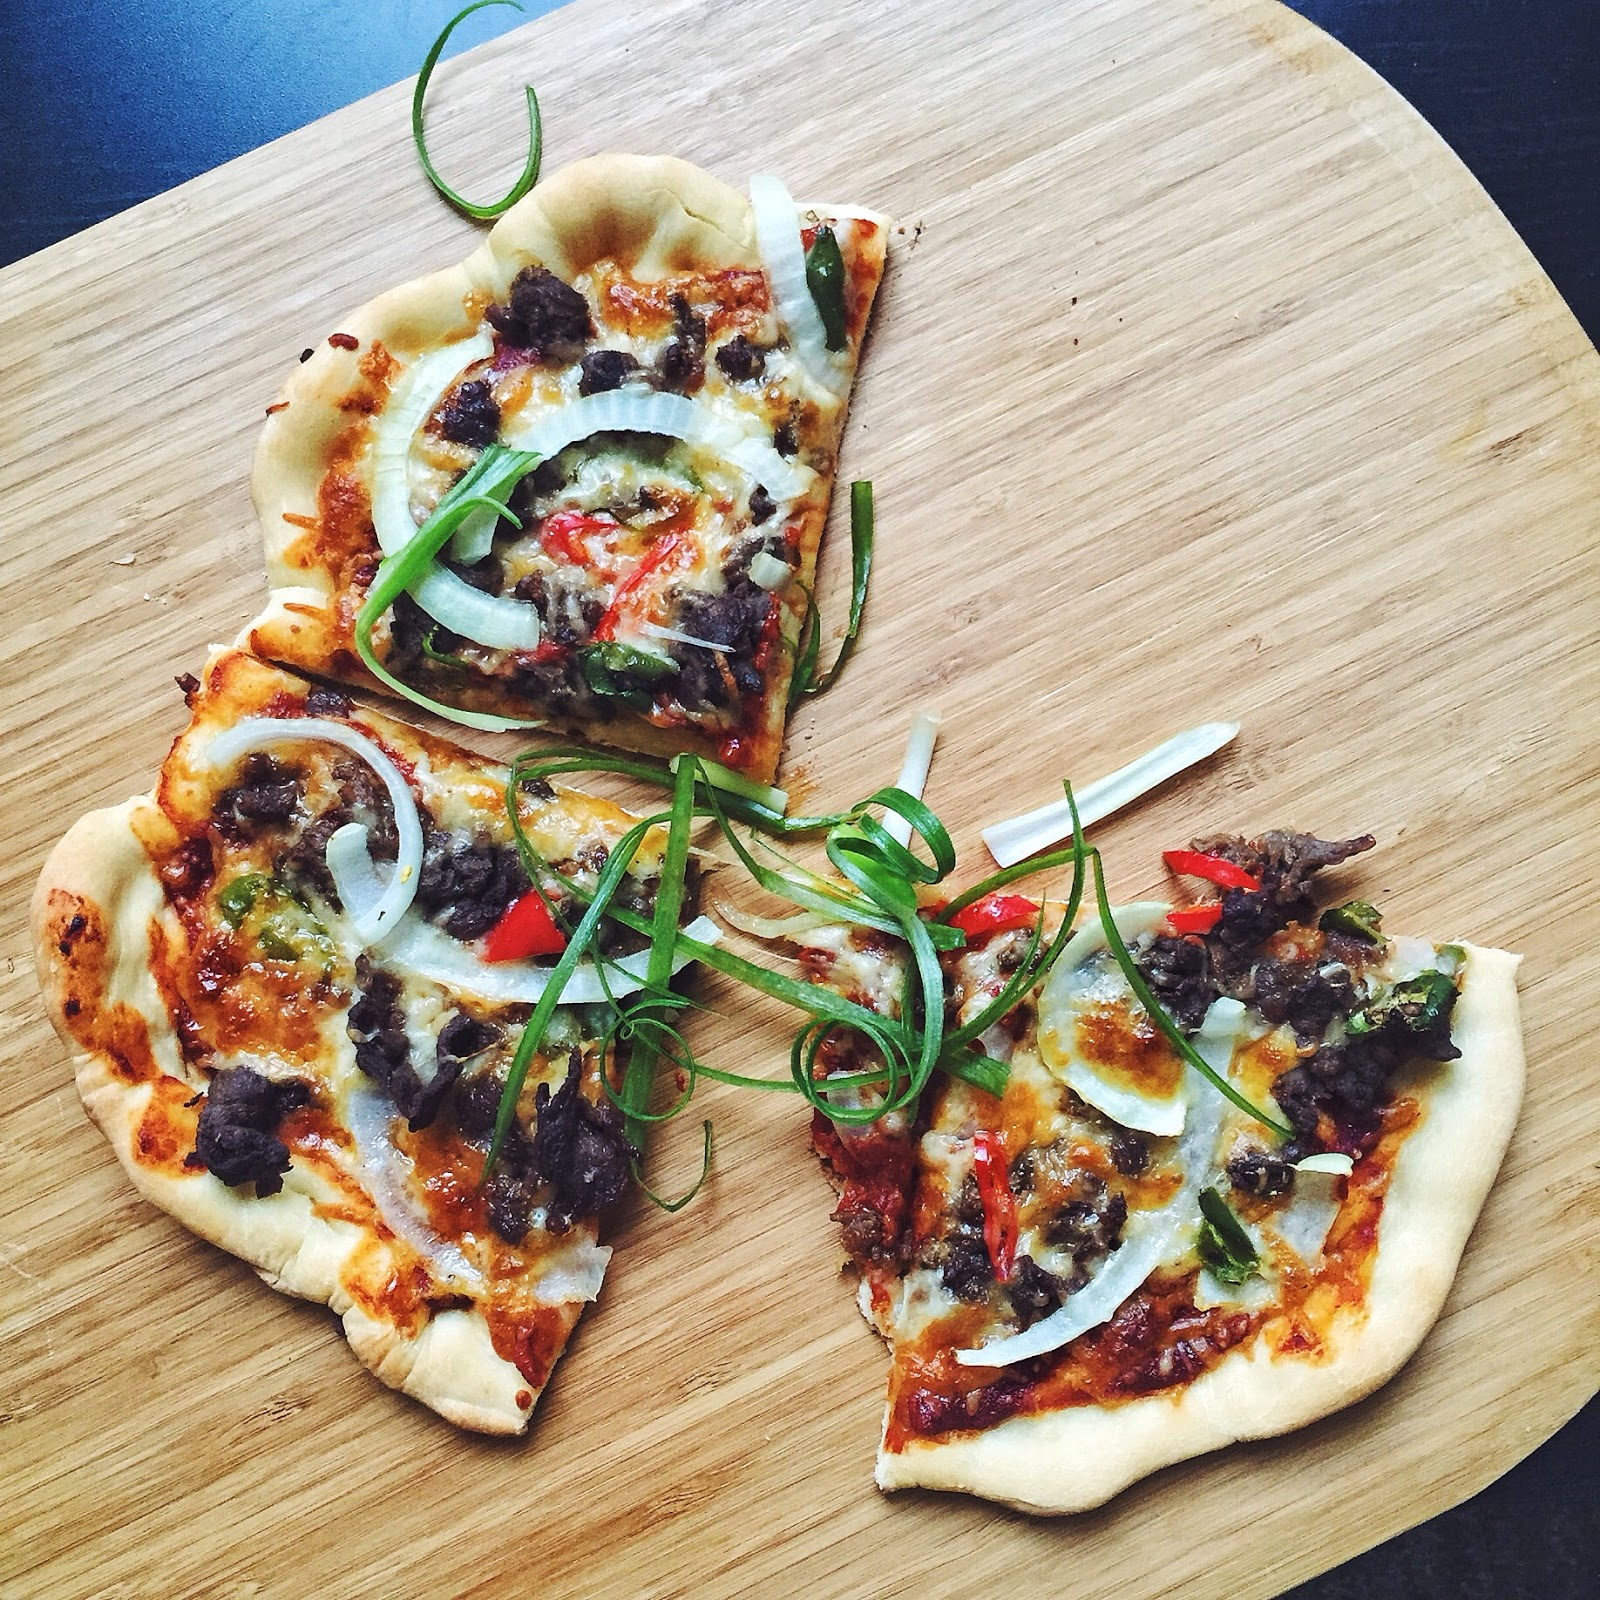 miss hangrypants bulgogi chili pizza with gochujang tomato sauce